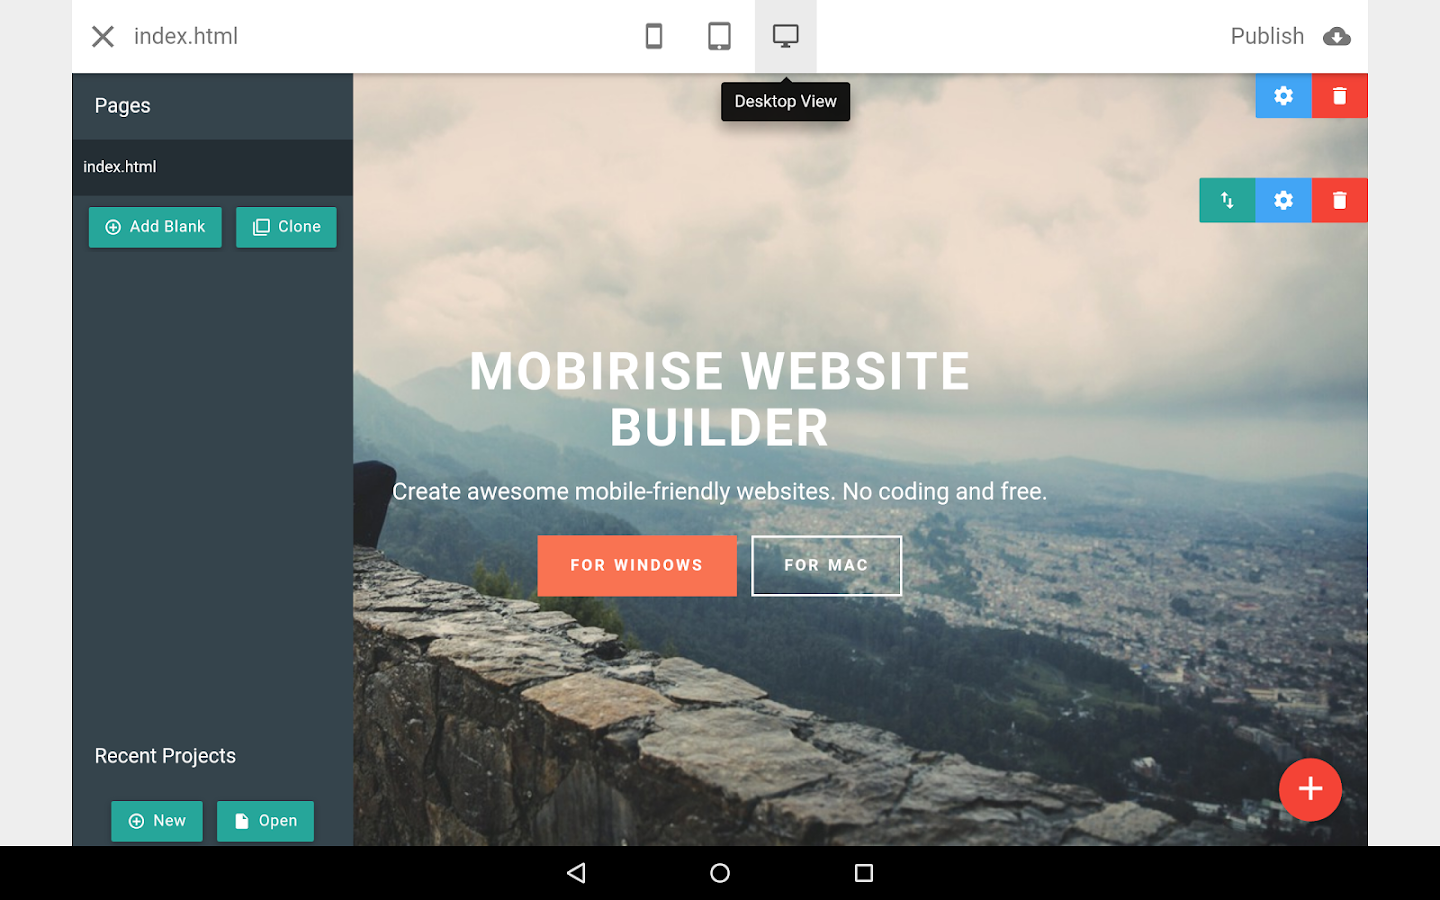 mobirise website builder version history download lengkap